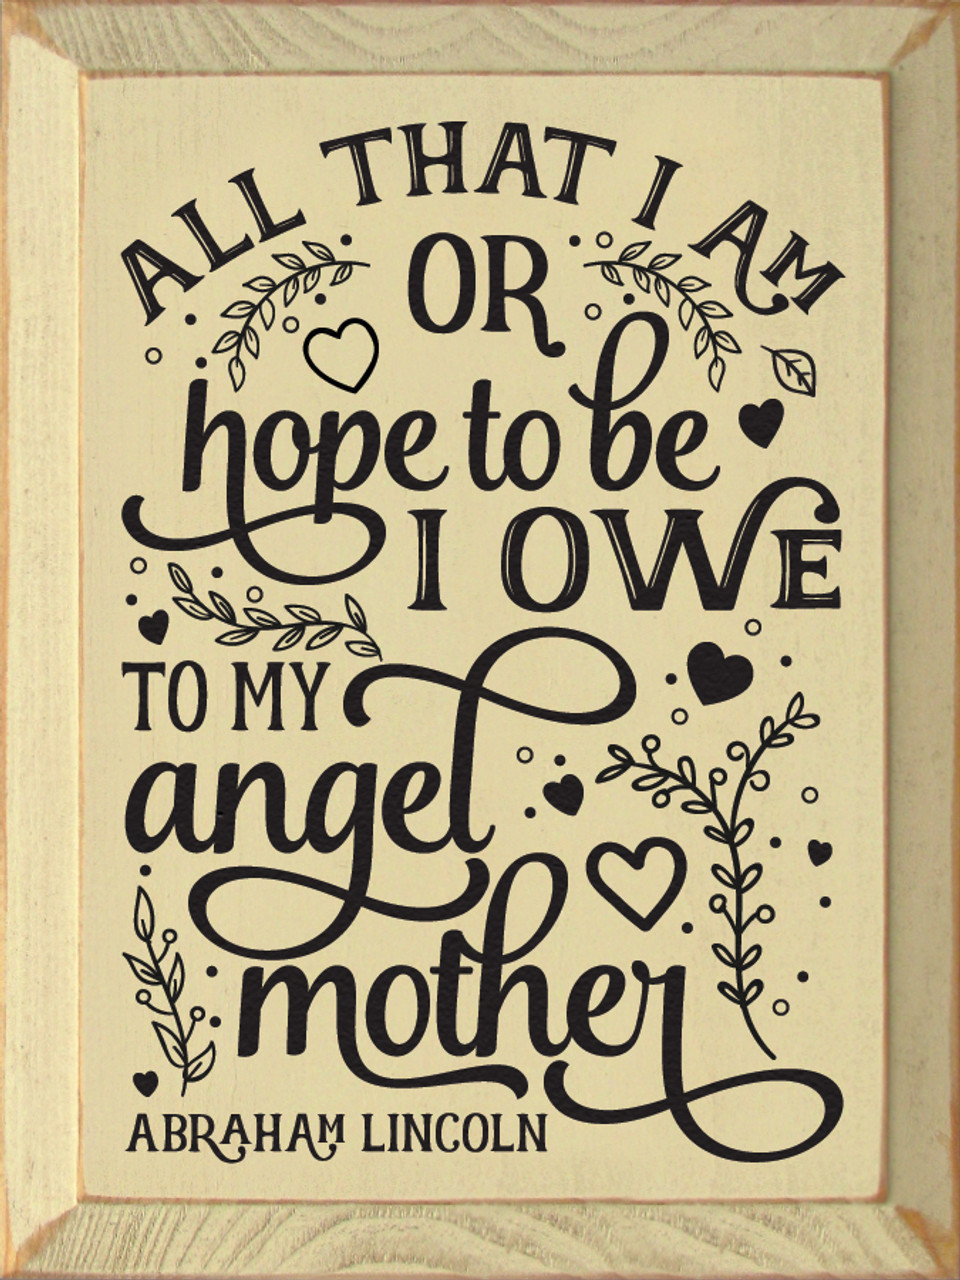 Floating Quote Mommy Gift for Mom Acrylic Mother/'s Day Sign I owe to my angel mother or hope to be Abraham Lincoln All that I am